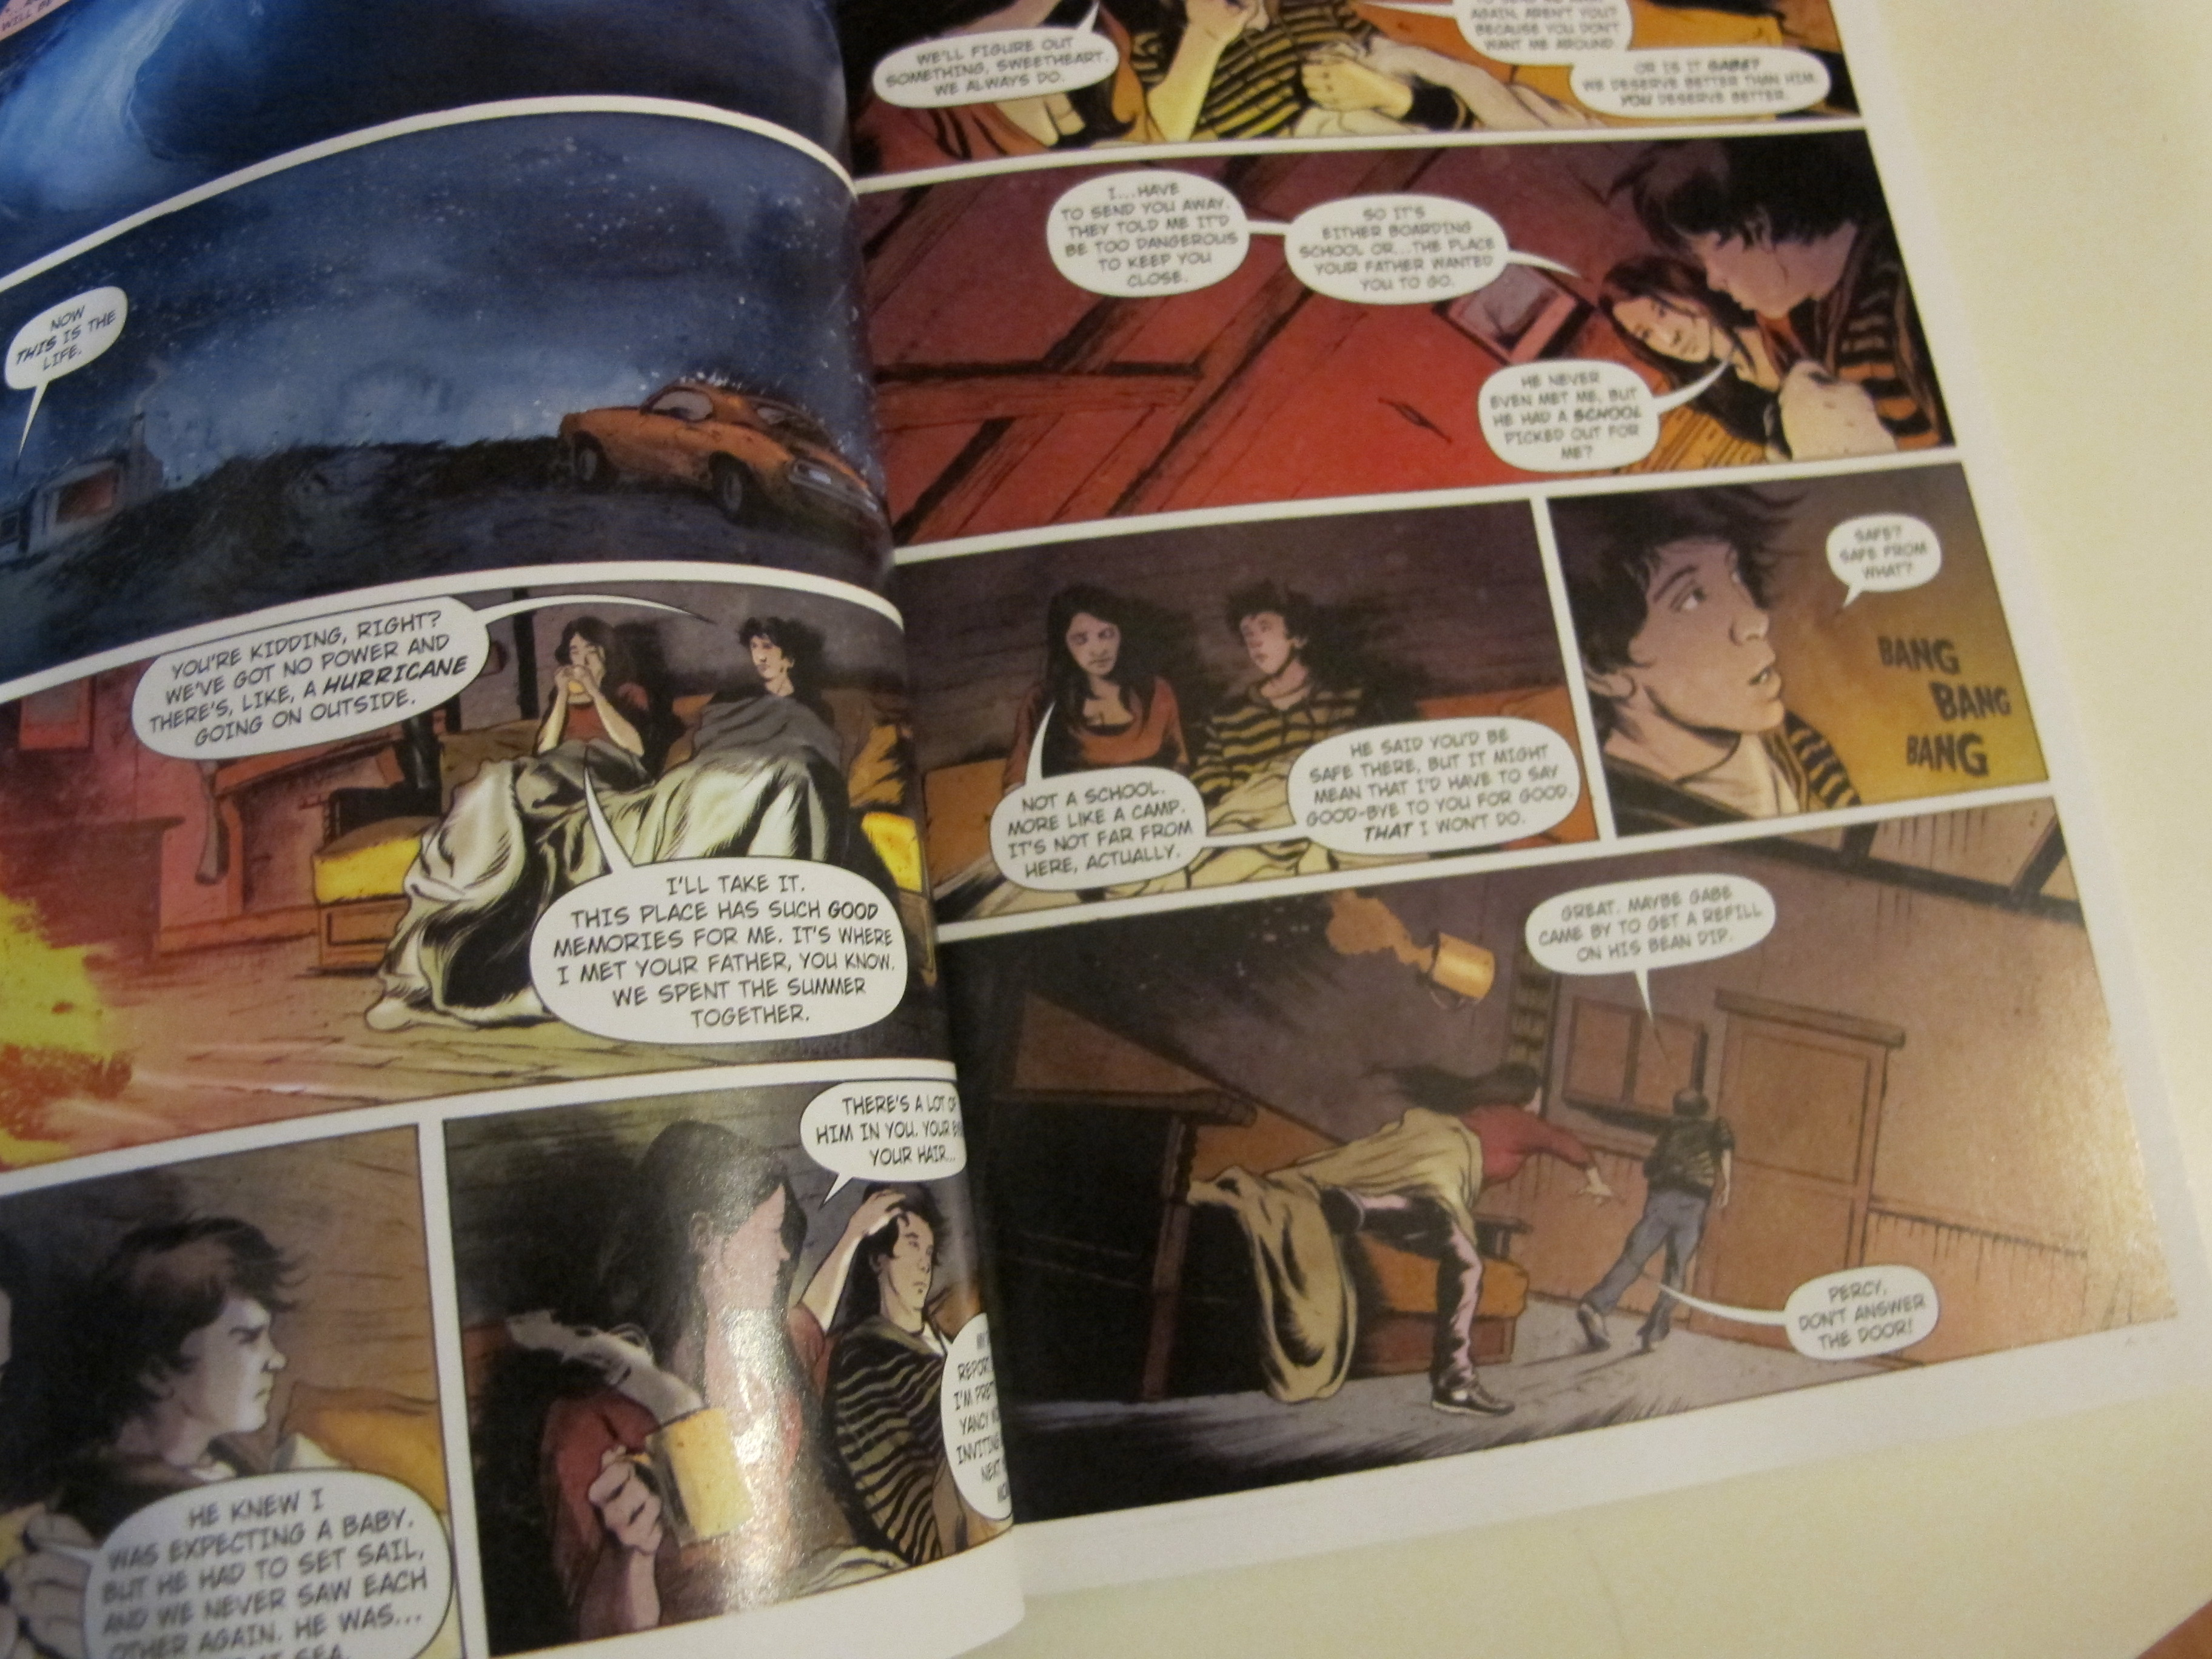 Spotted Graphic Novel Of The Lightning Thief